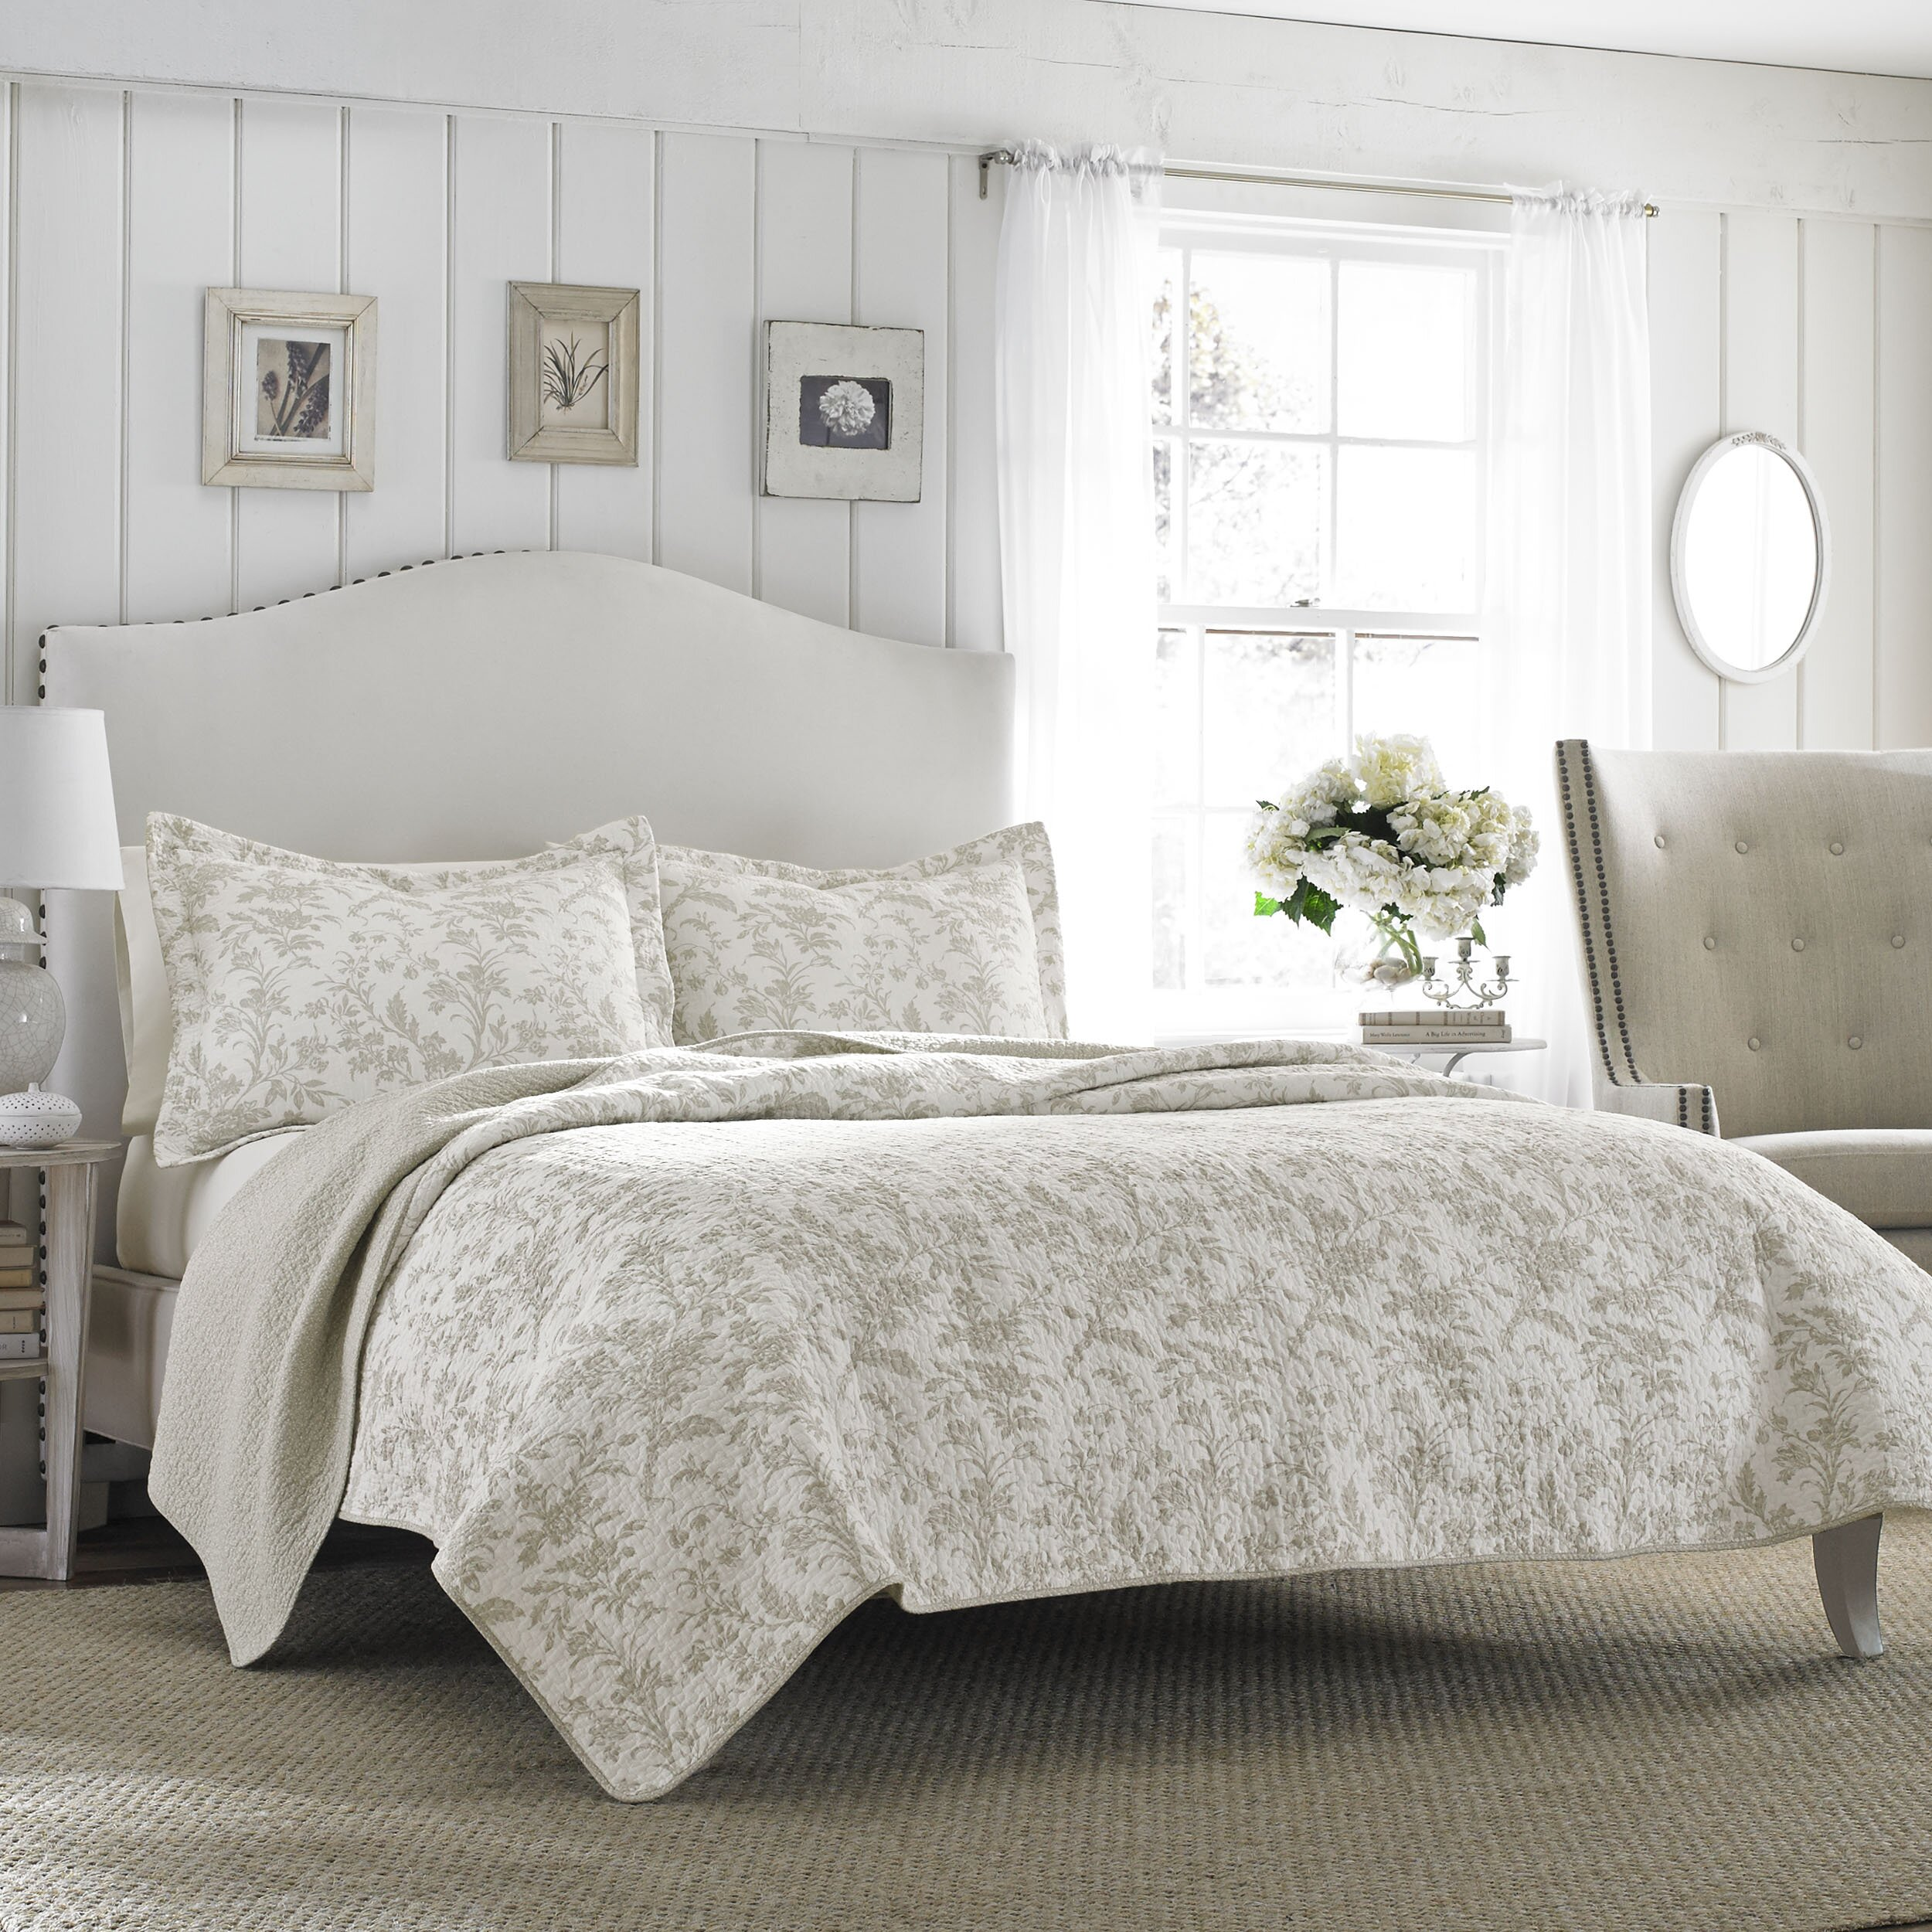 laura ashley home laura ashley riley quilt set reviews wayfair. Black Bedroom Furniture Sets. Home Design Ideas